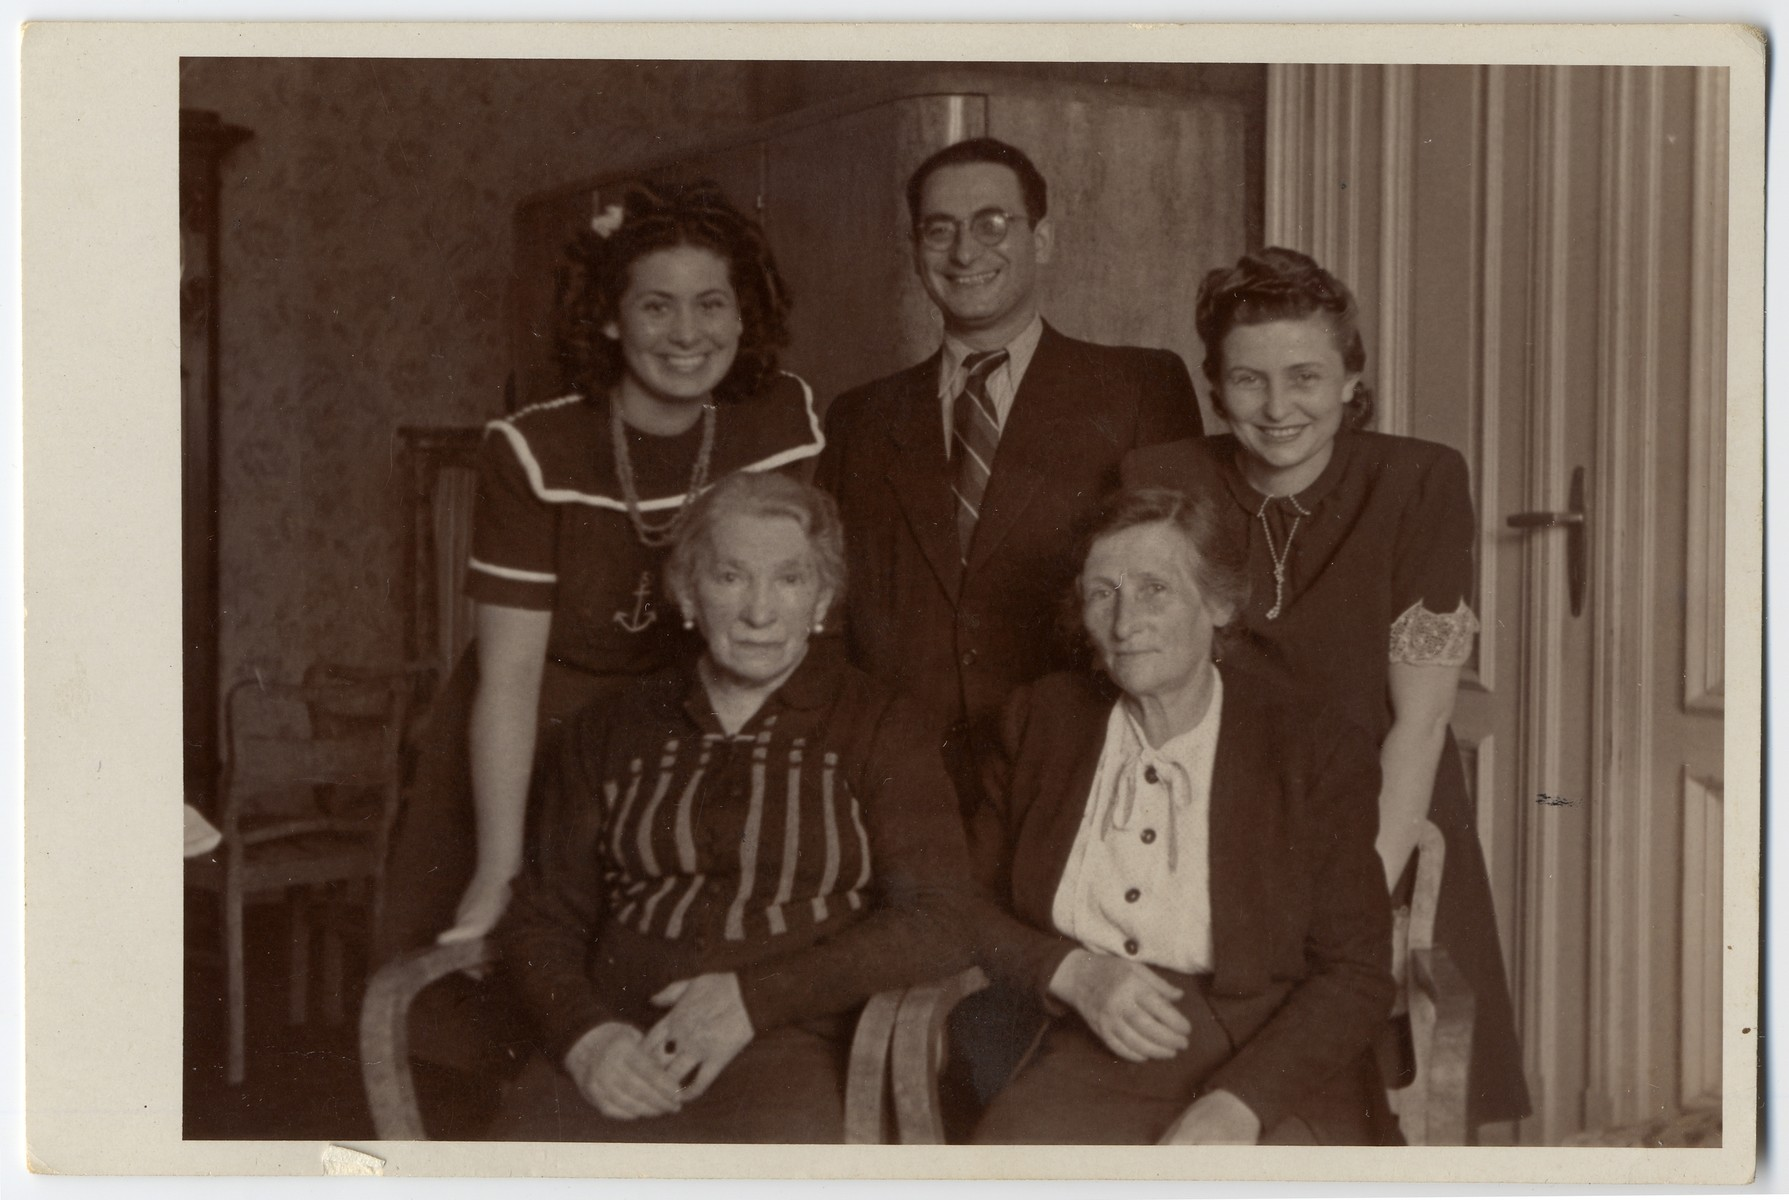 Group portrait of survivors from the Lodz ghetto.  Standing, from left to right, are the donor, Ruth Berlinska, her uncle, Leon Fajtlowicz, who was in charge of all the leather workshops in the Lodz ghetto, and his wife Cesia.  Seated are Leon's mother, Ester Fajtlowicz and Cesia's mother, Towa Golab, both of whom survived in hiding.